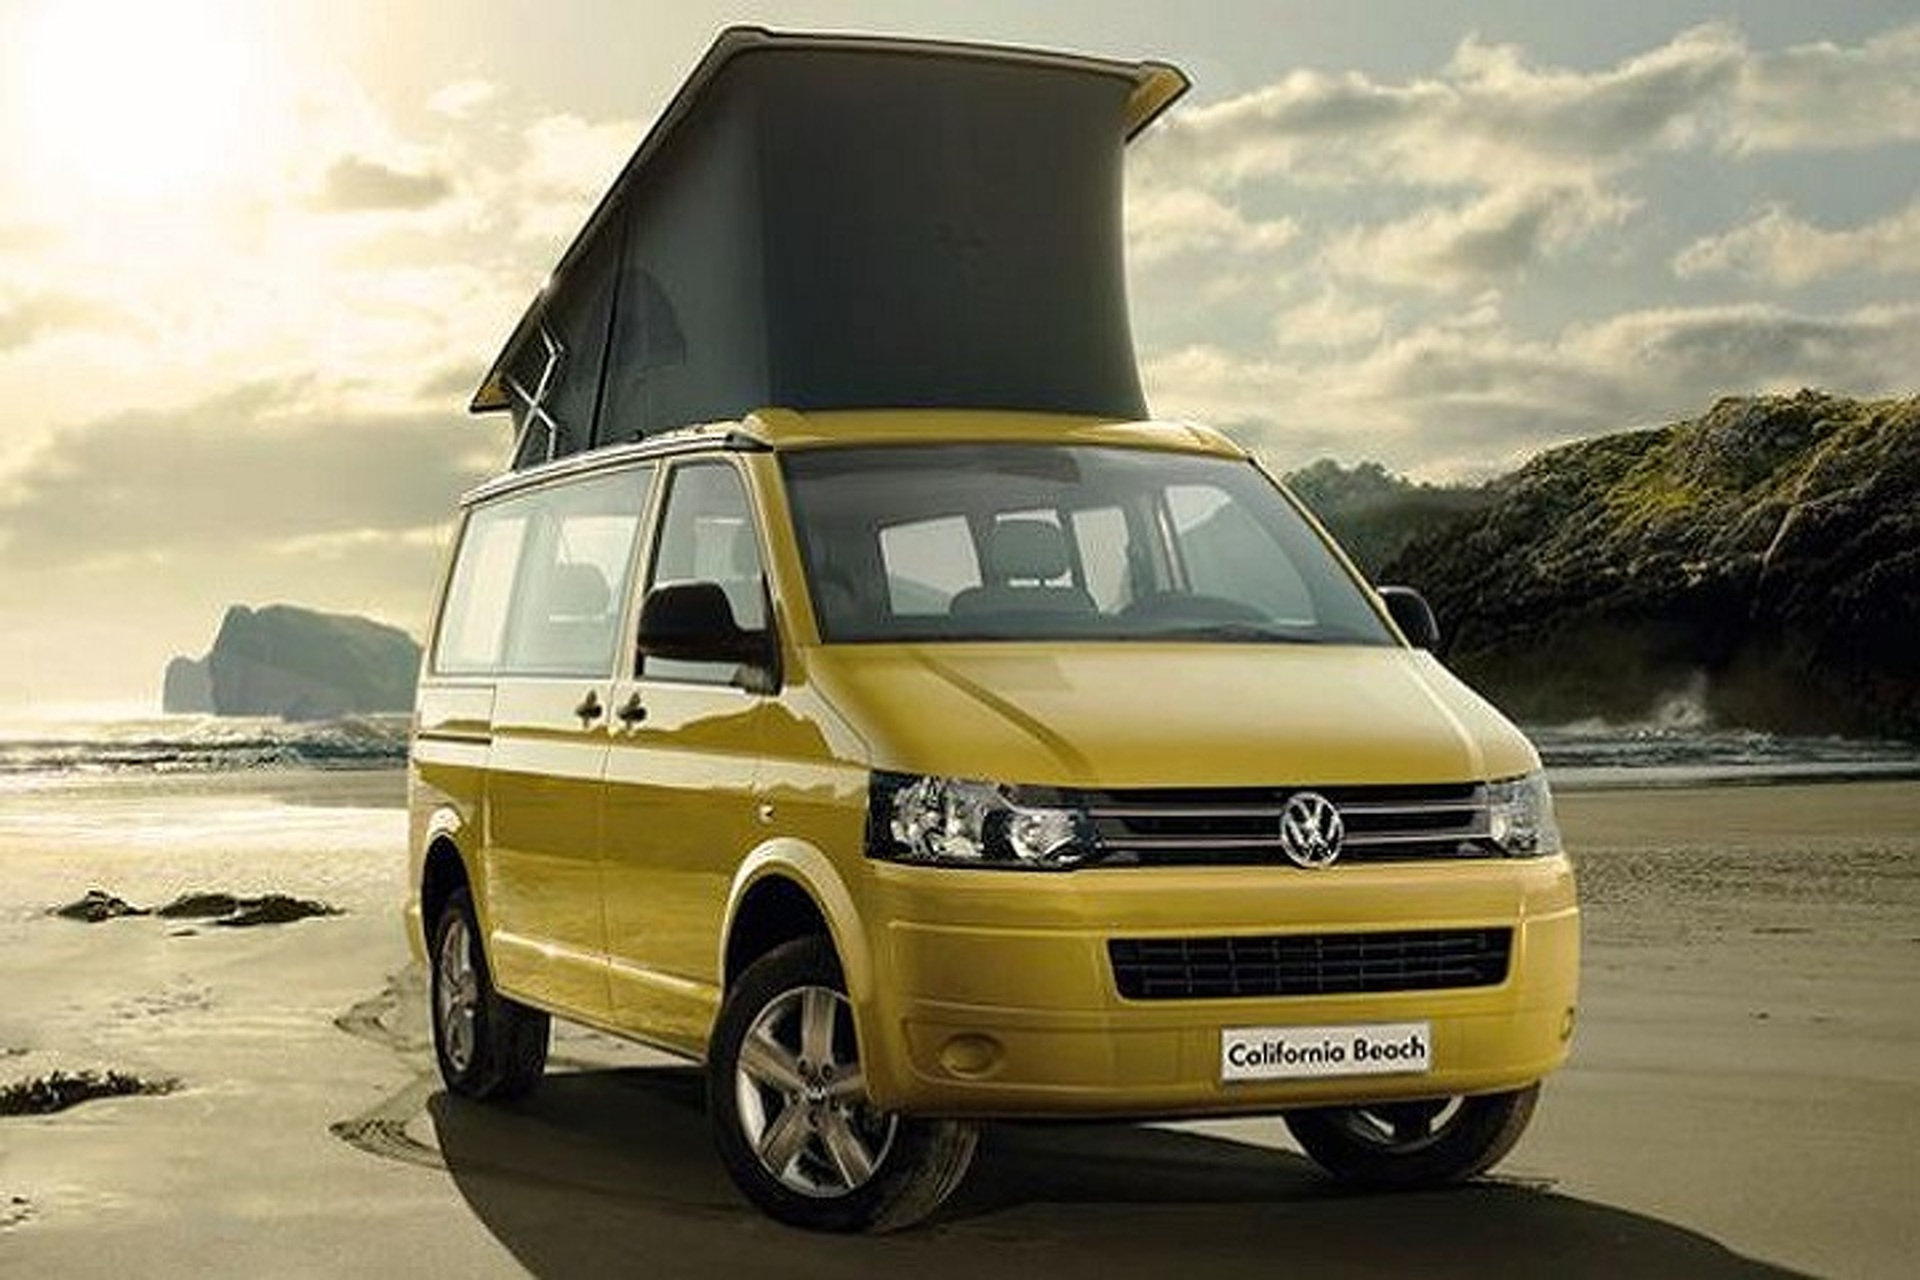 Why Cant The US Have This Awesome Volkswagen Camper Van